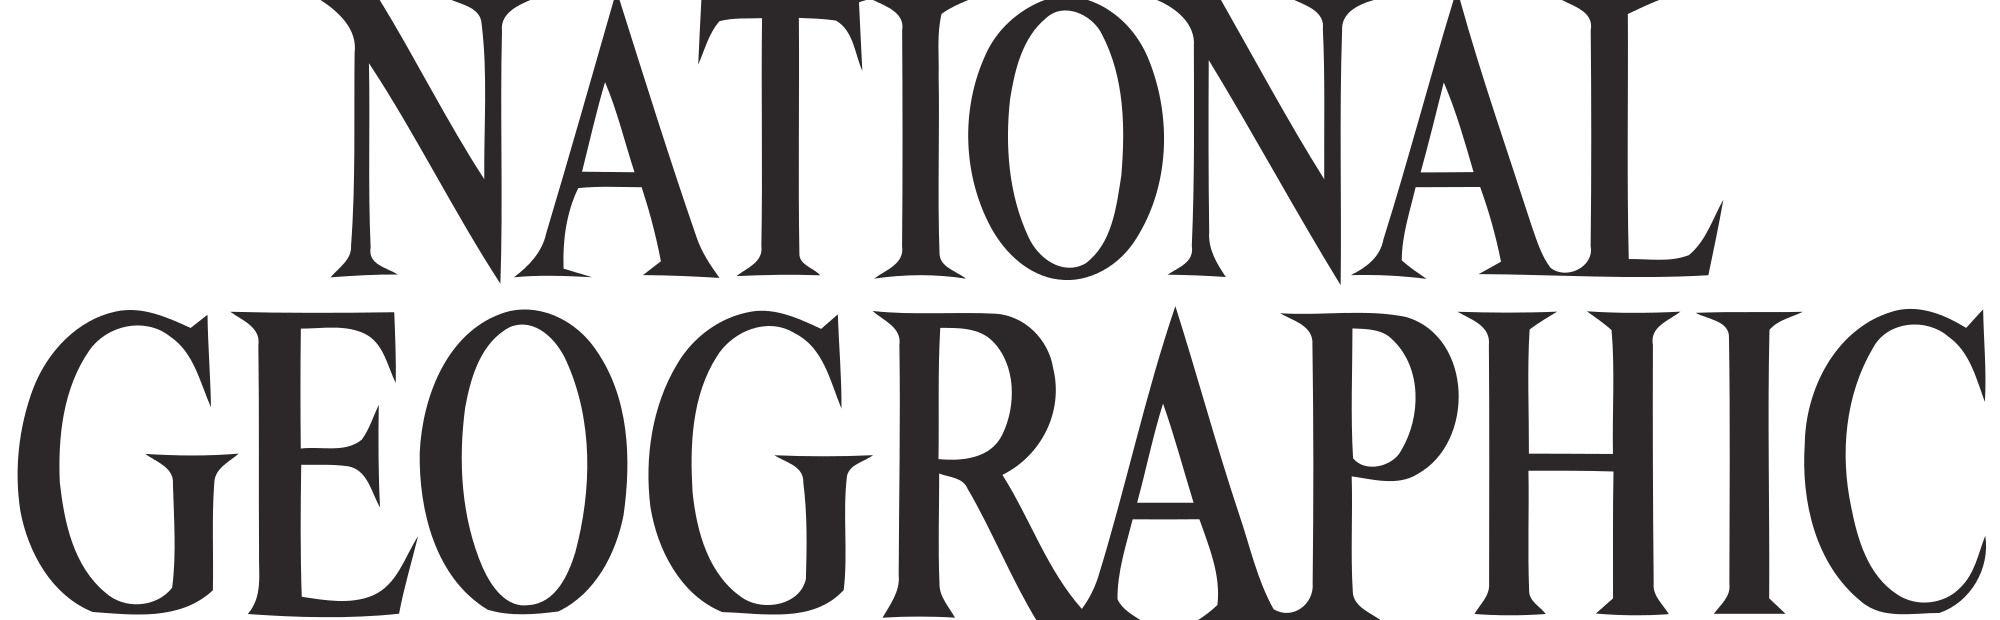 Open Hdpng.com  - National Geographic Vector, Transparent background PNG HD thumbnail